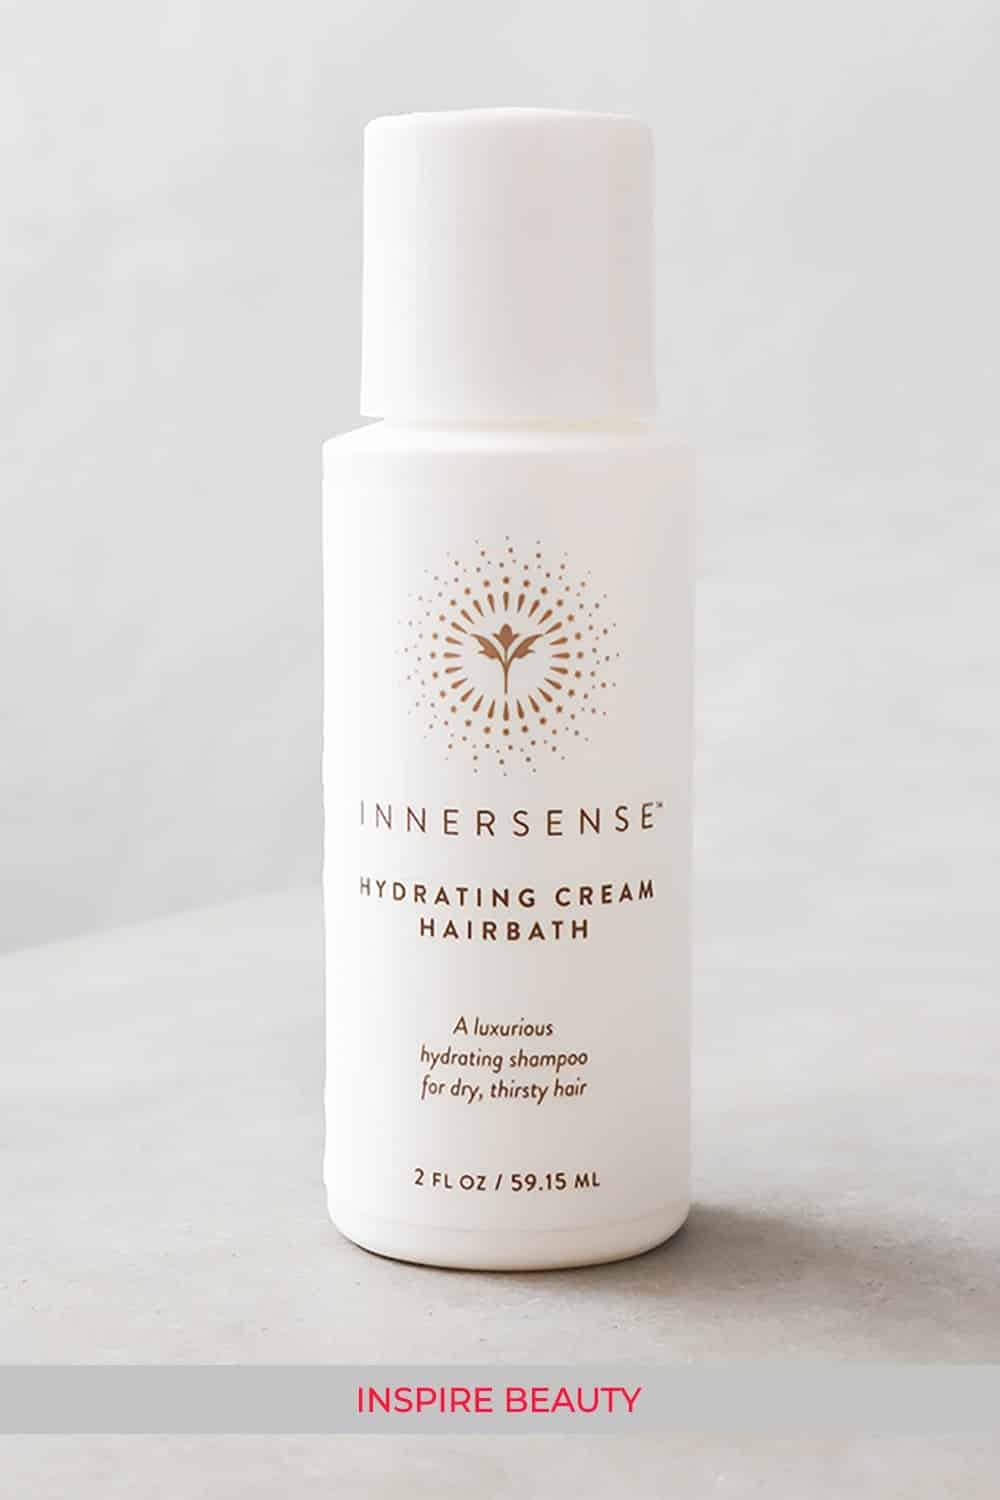 Innersense Hydrating Cream Hairbath review for dry, damaged and brittle hair.